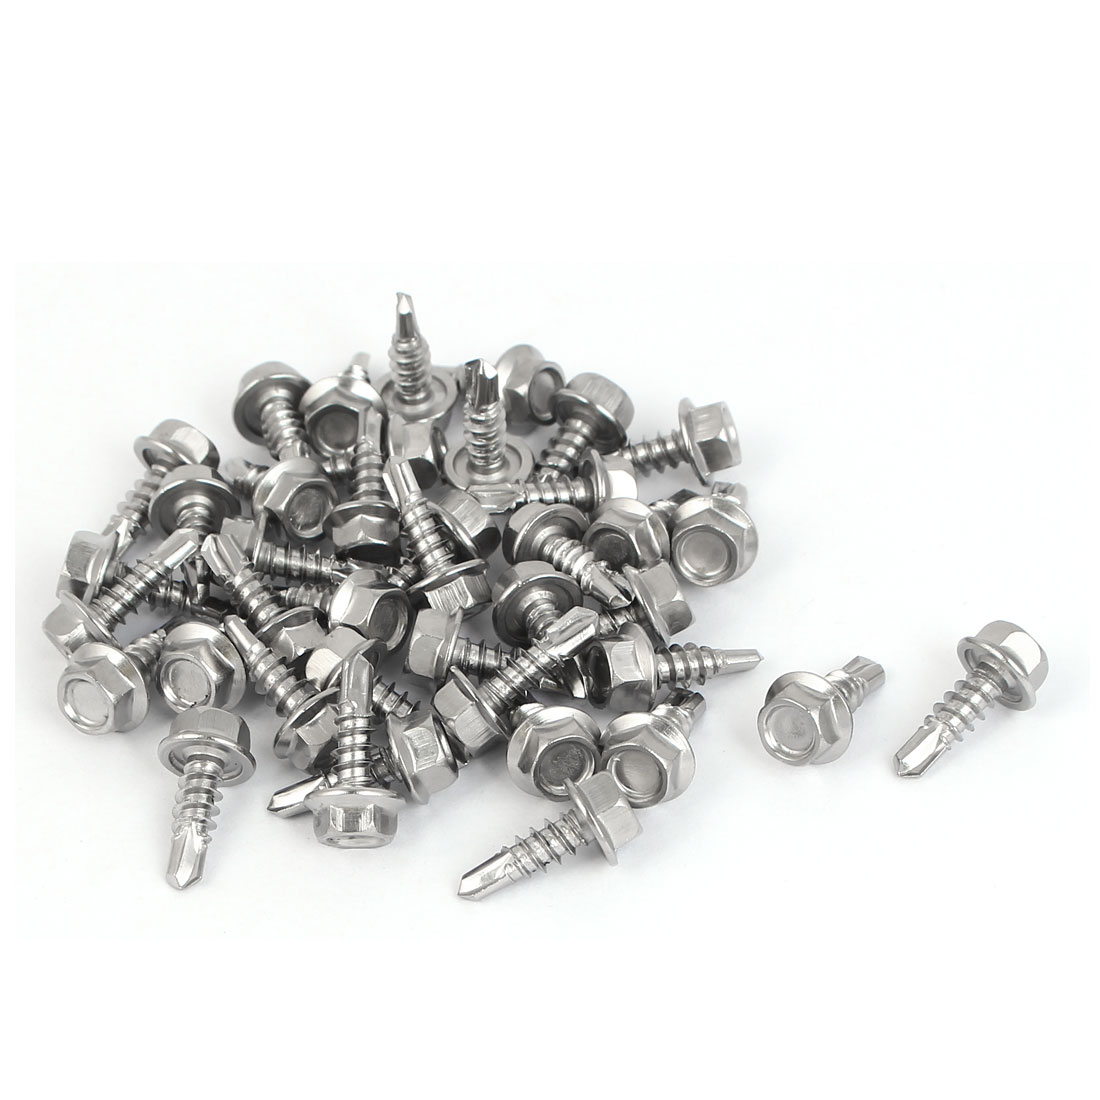 M4.2 x 13mm Male Thread Hex Washer Head Self Drilling Screws Bolts 40 Pcs